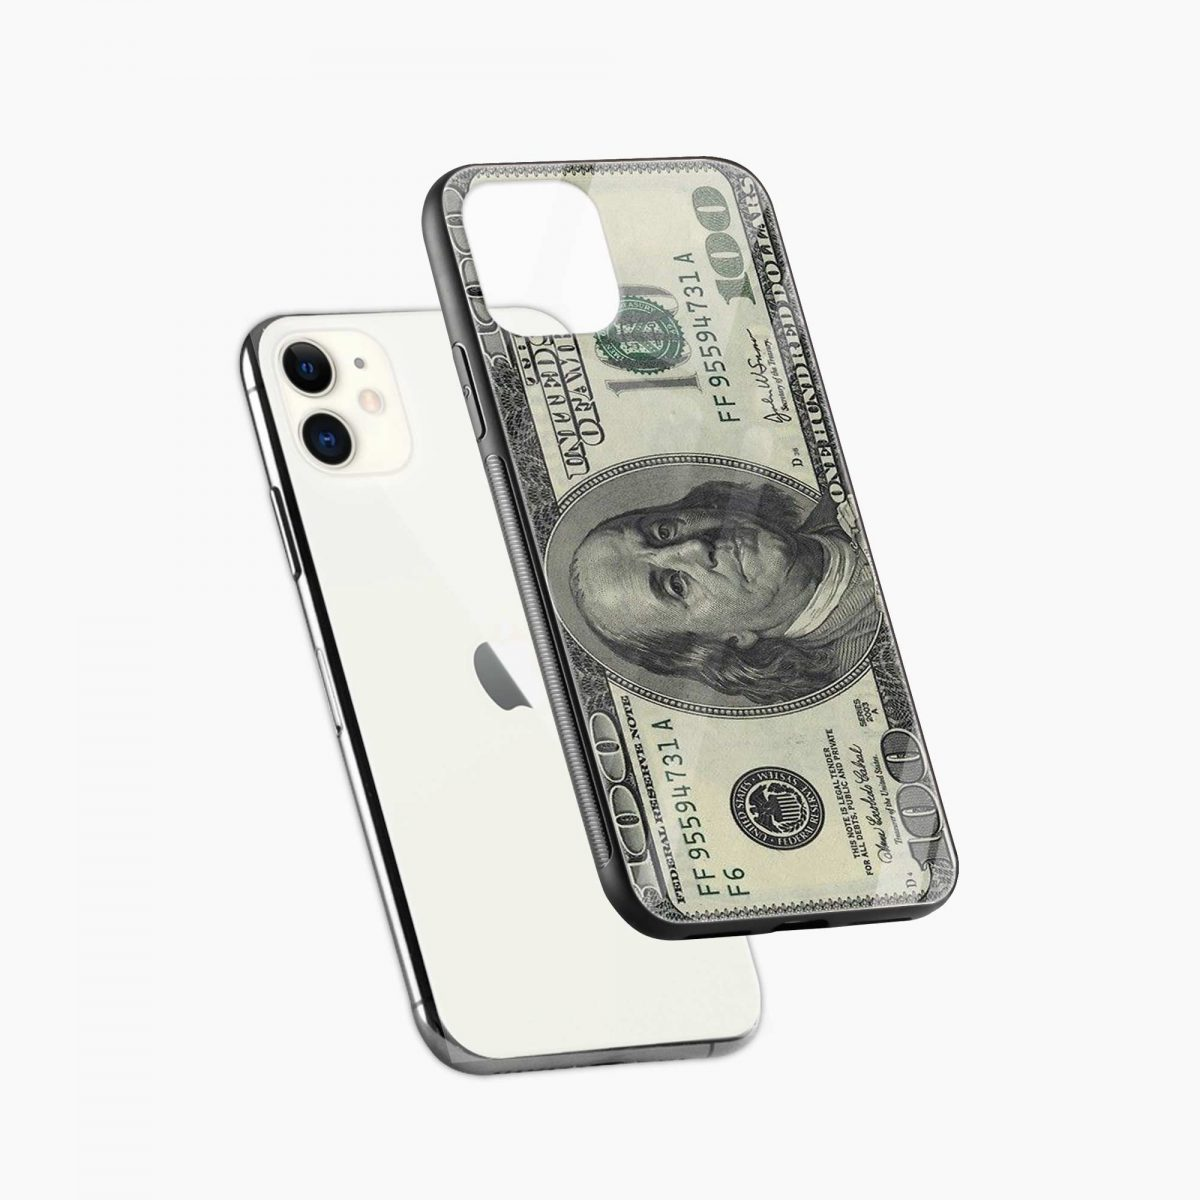 dollar iphone back cover diagonal view